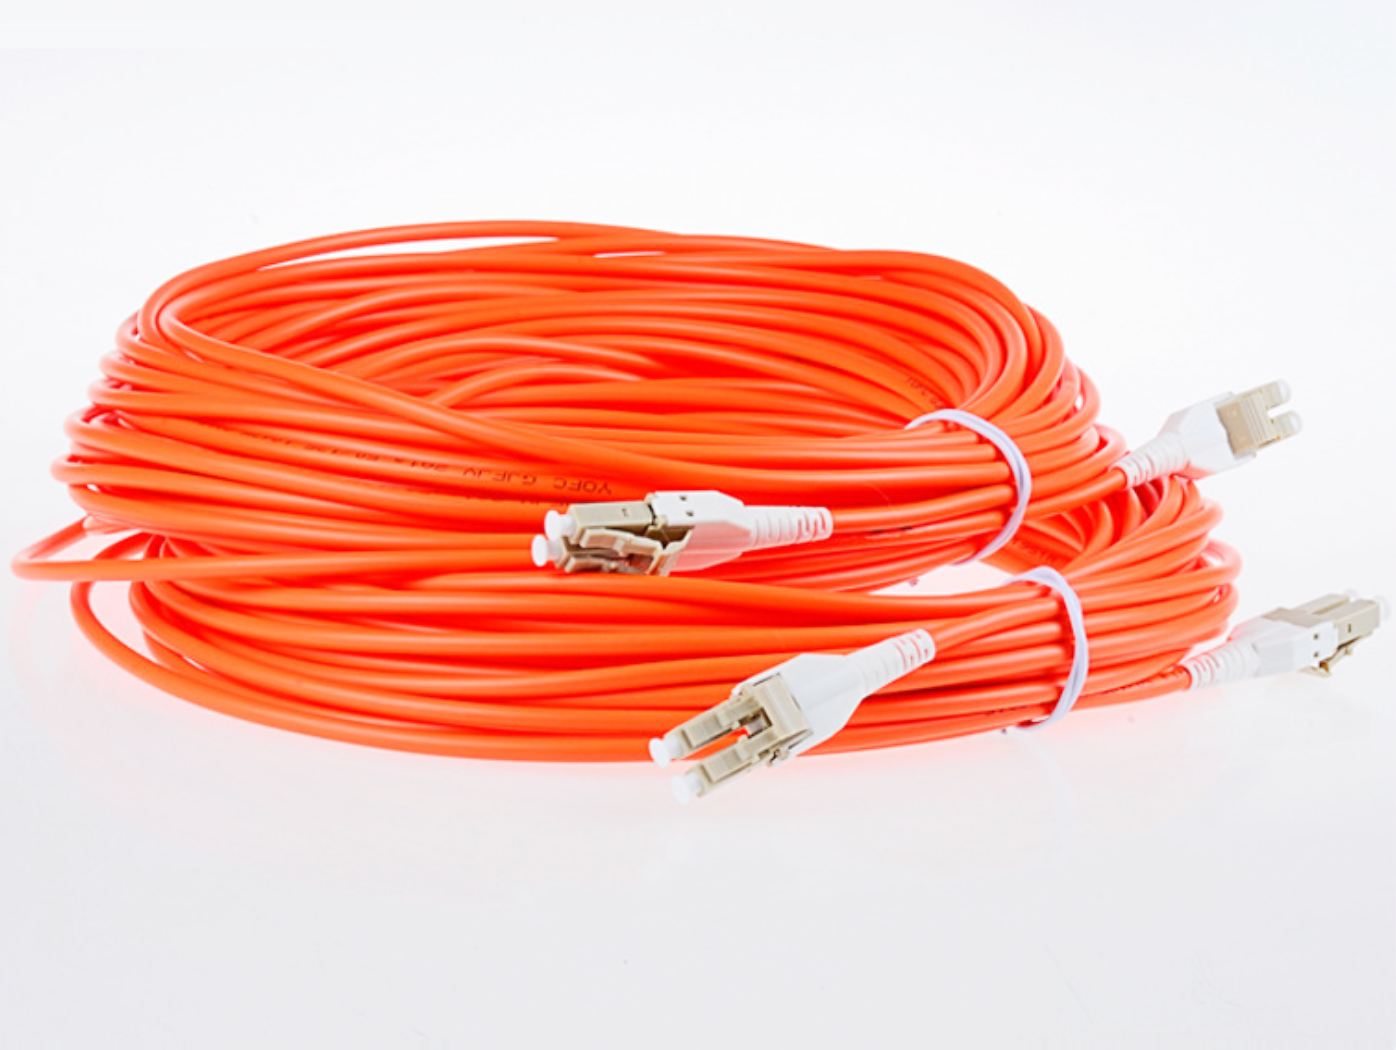 50M Armored Cable Fiber Patch Cord LC to LC UPC Pigtail Multi-Mode Cables Duplex